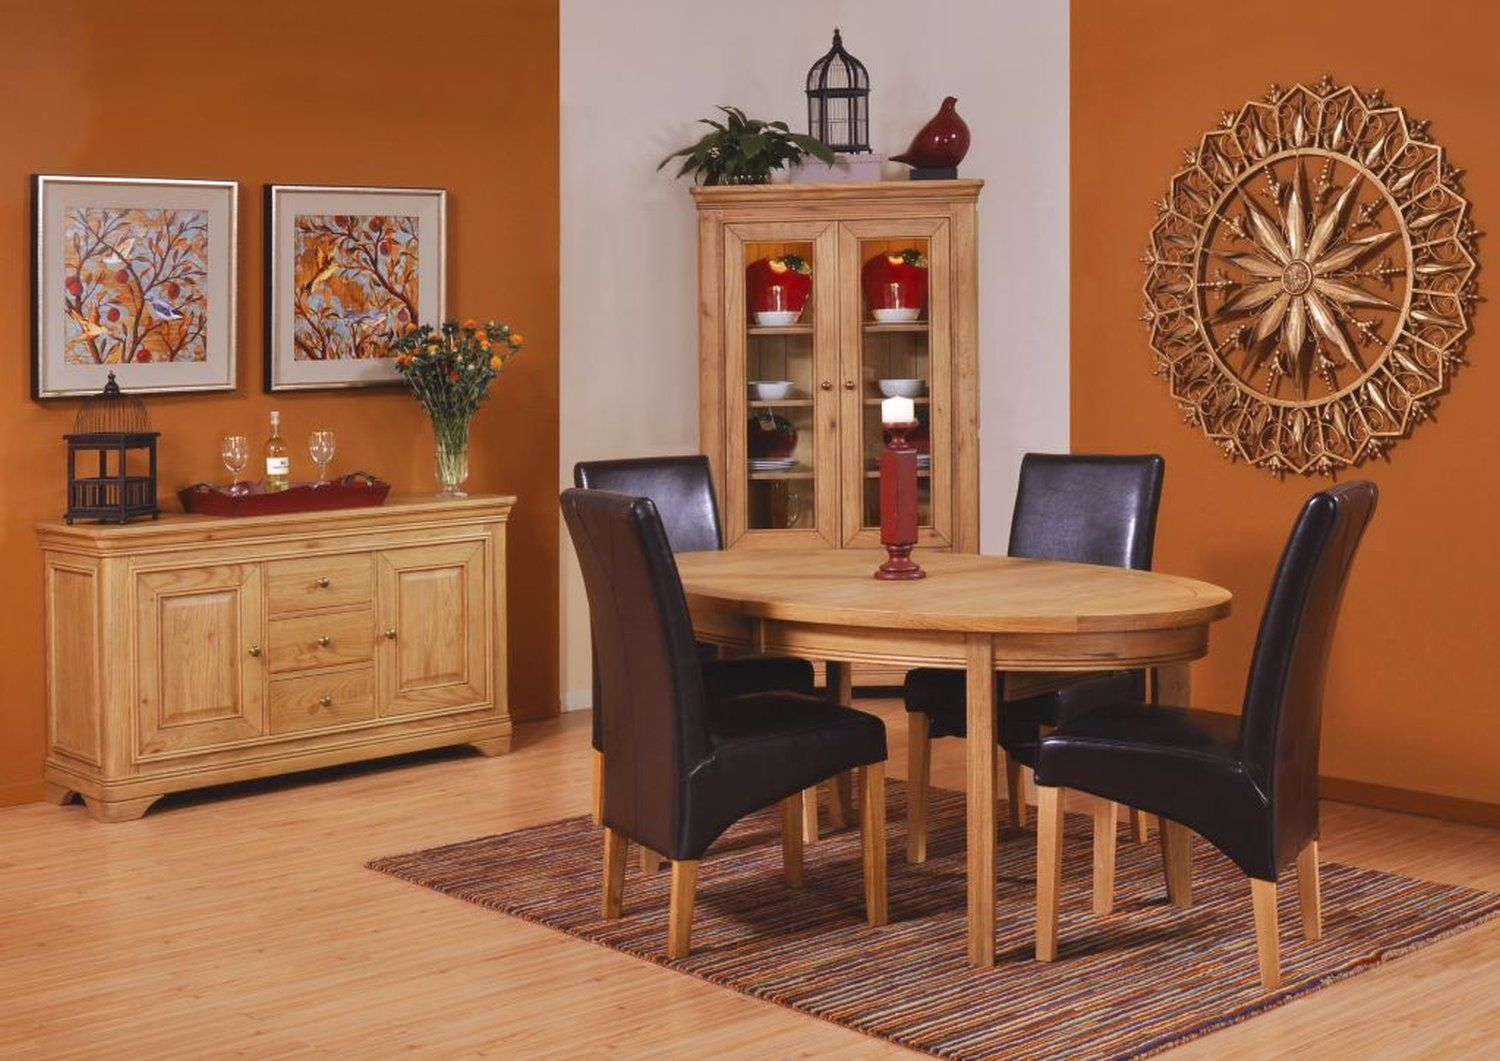 Ebay Dining Furniture  Design Ideas 20172018  Pinterest  Oak Captivating Oak Dining Room Furniture Review